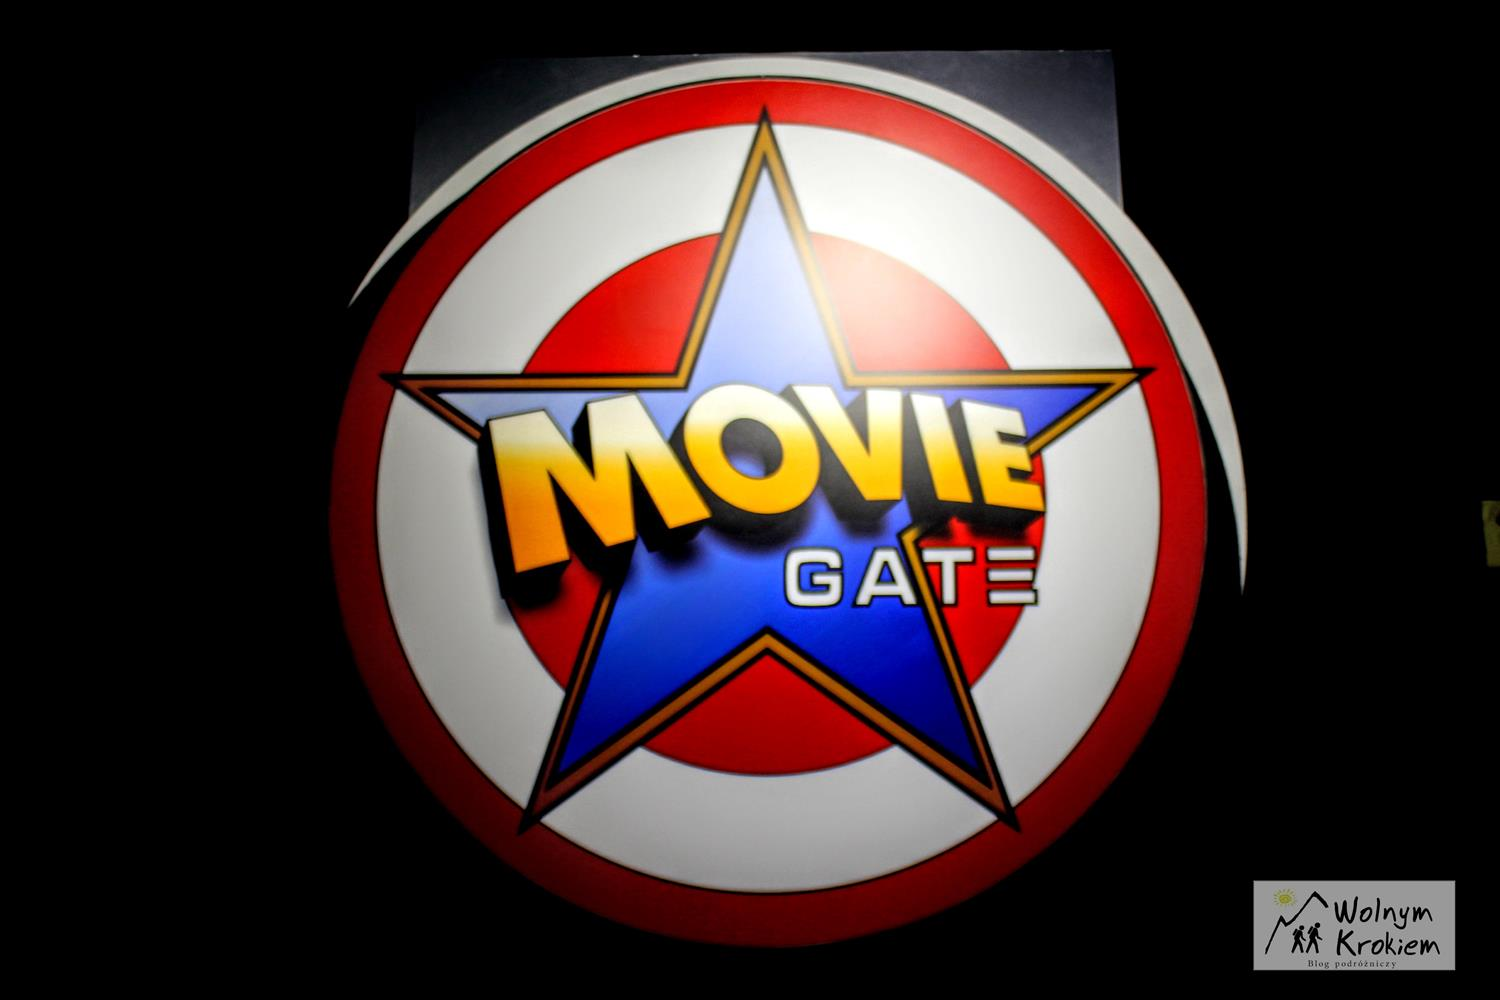 Movie Gate Wroclaw logo